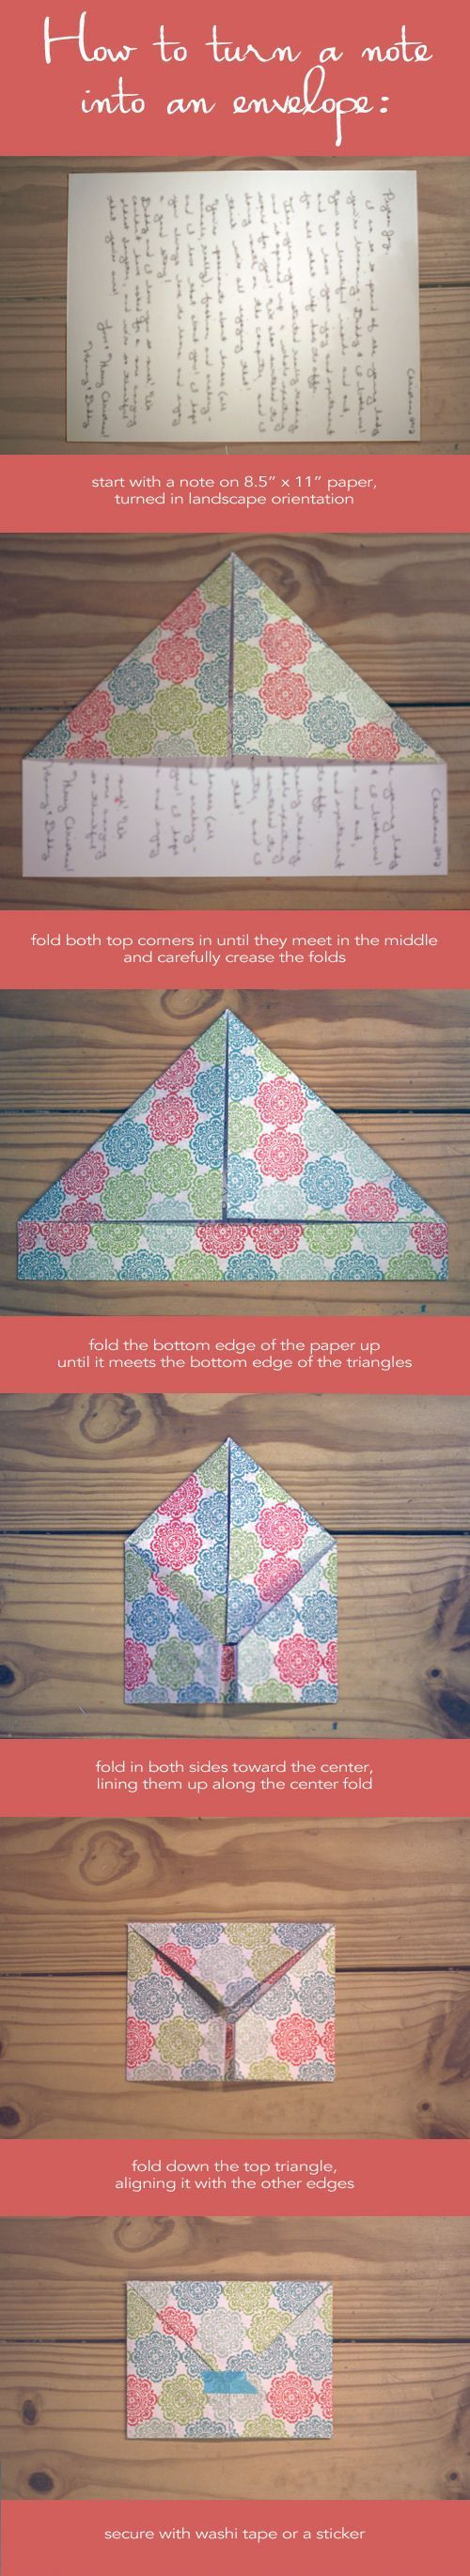 Turn a note into an envelope